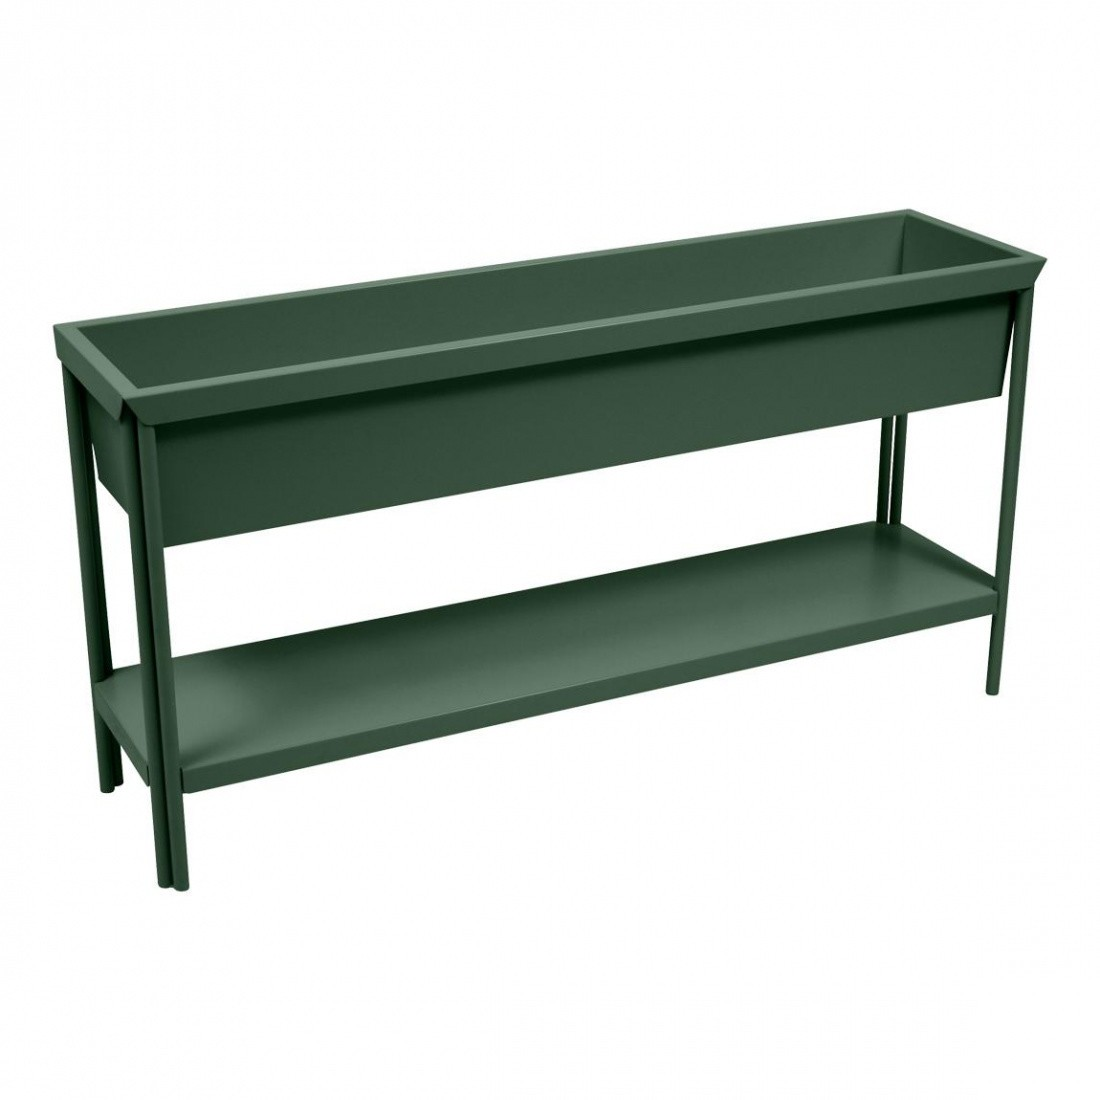 Planting Tables For Sale Terrazza Planter Medium